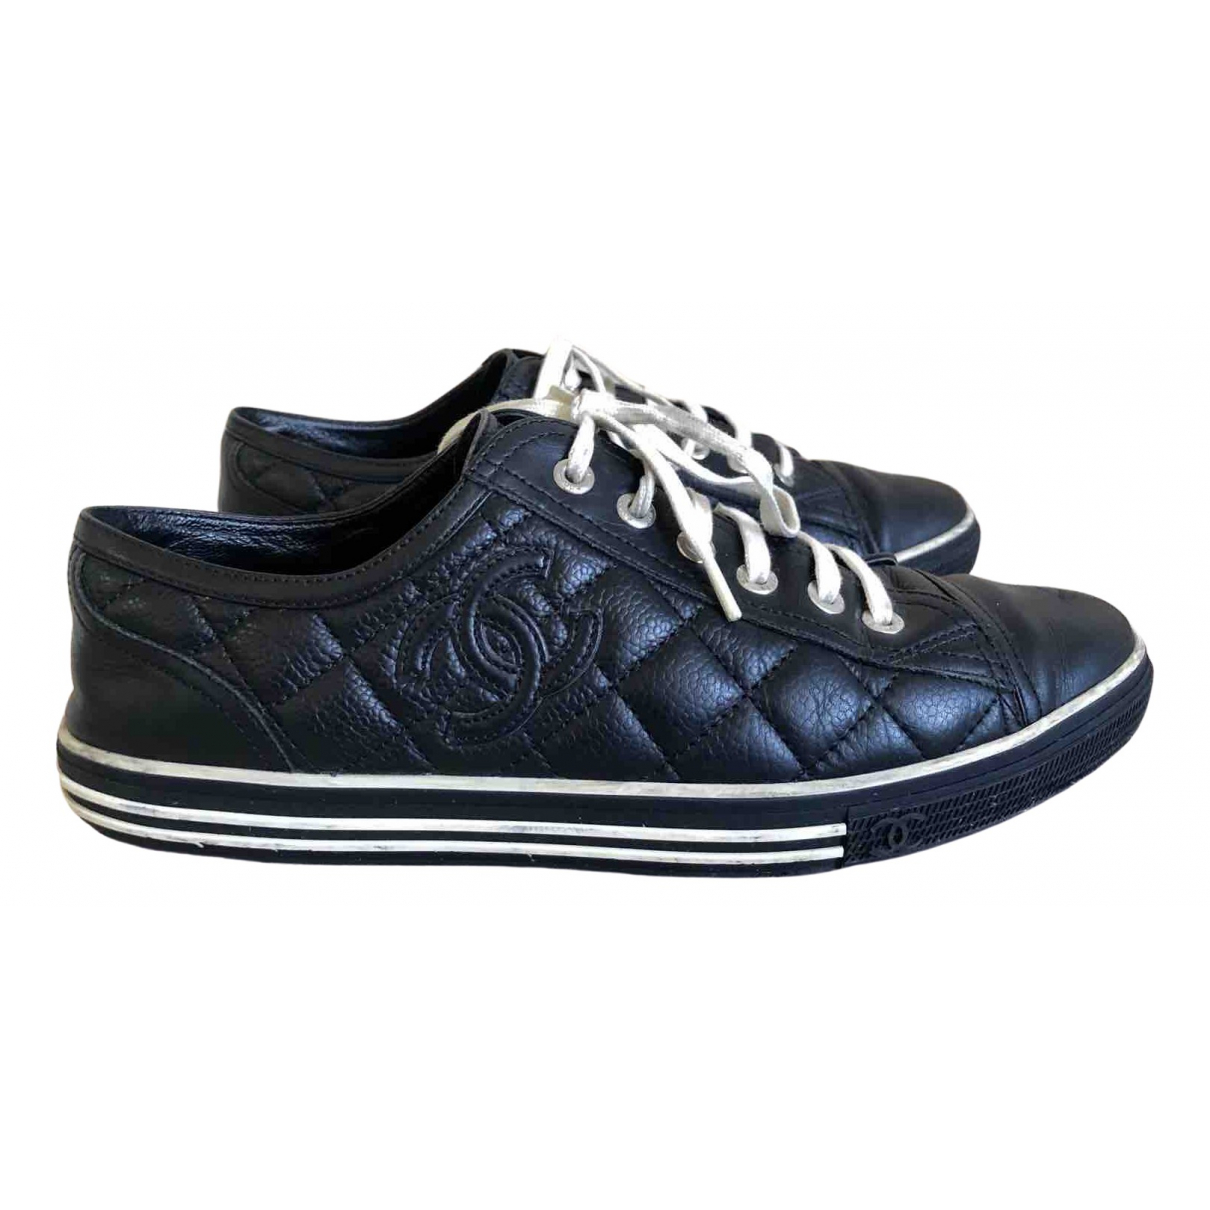 Chanel \N Black Leather Trainers for Women 38 EU